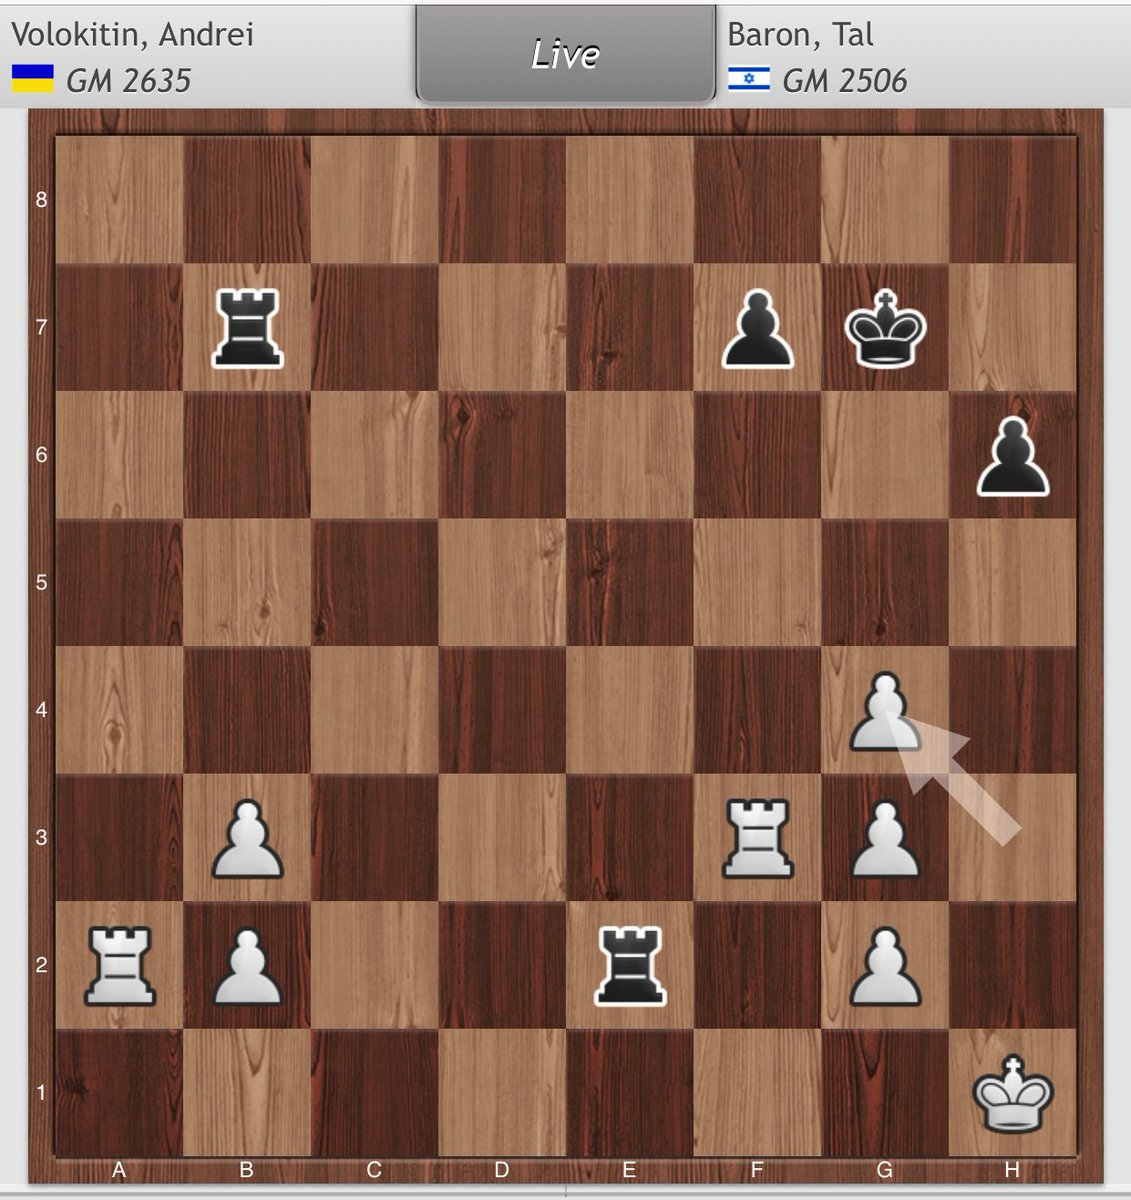 test Twitter Media - RT @CristianChirila: Materialism gone very wrong 😬   Black to move. Have at it! #EICC2019 https://t.co/sSKvoZm7nP